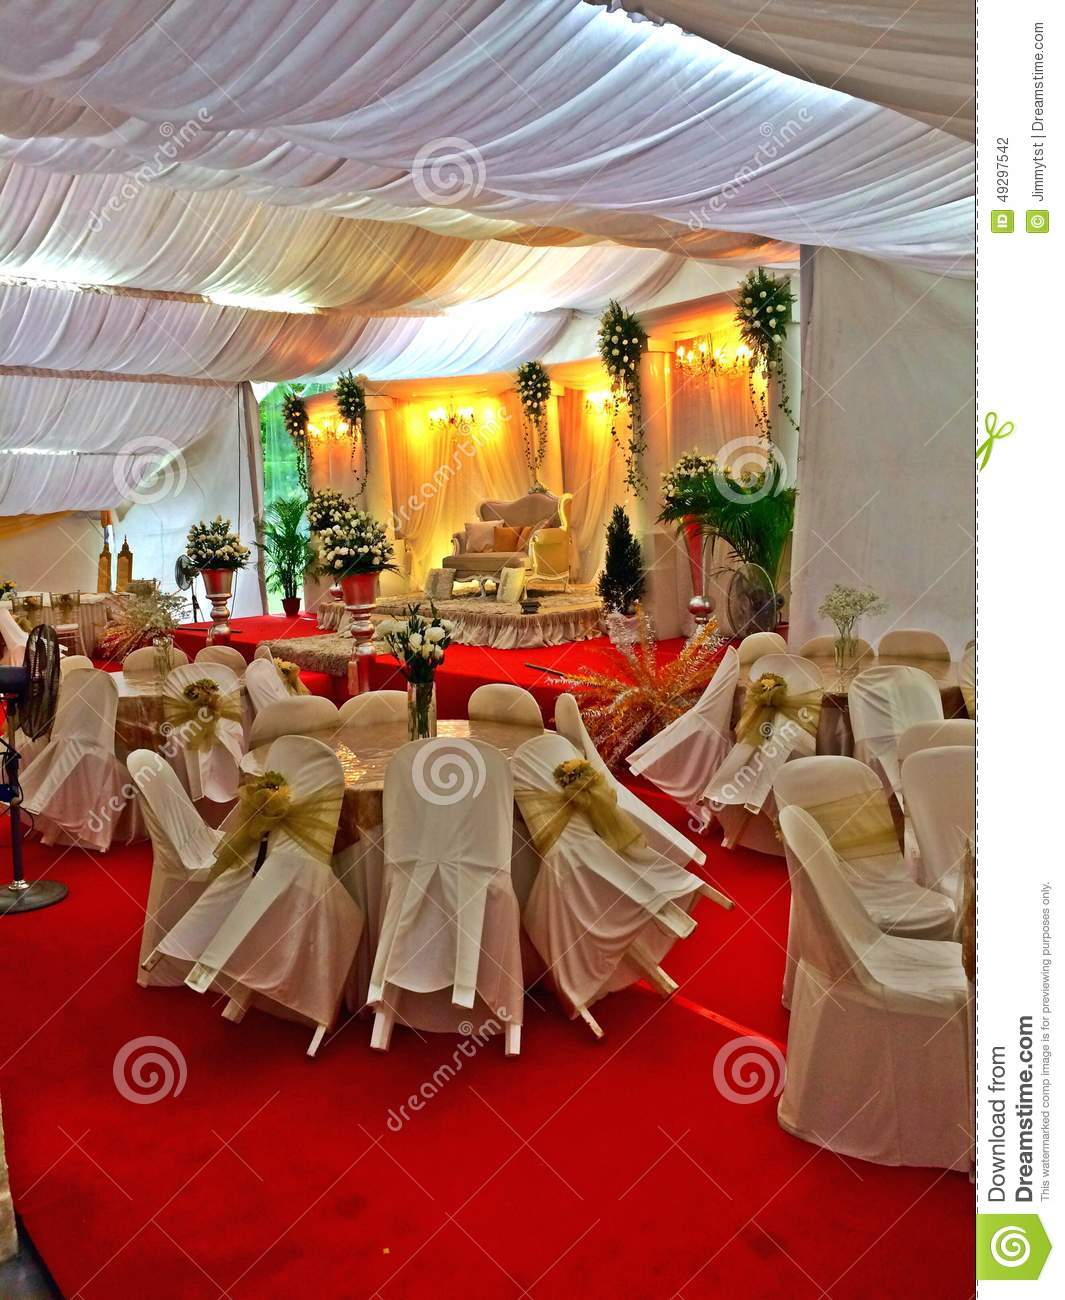 Malay Wedding Decor In Singapore Editorial Photography Image Of